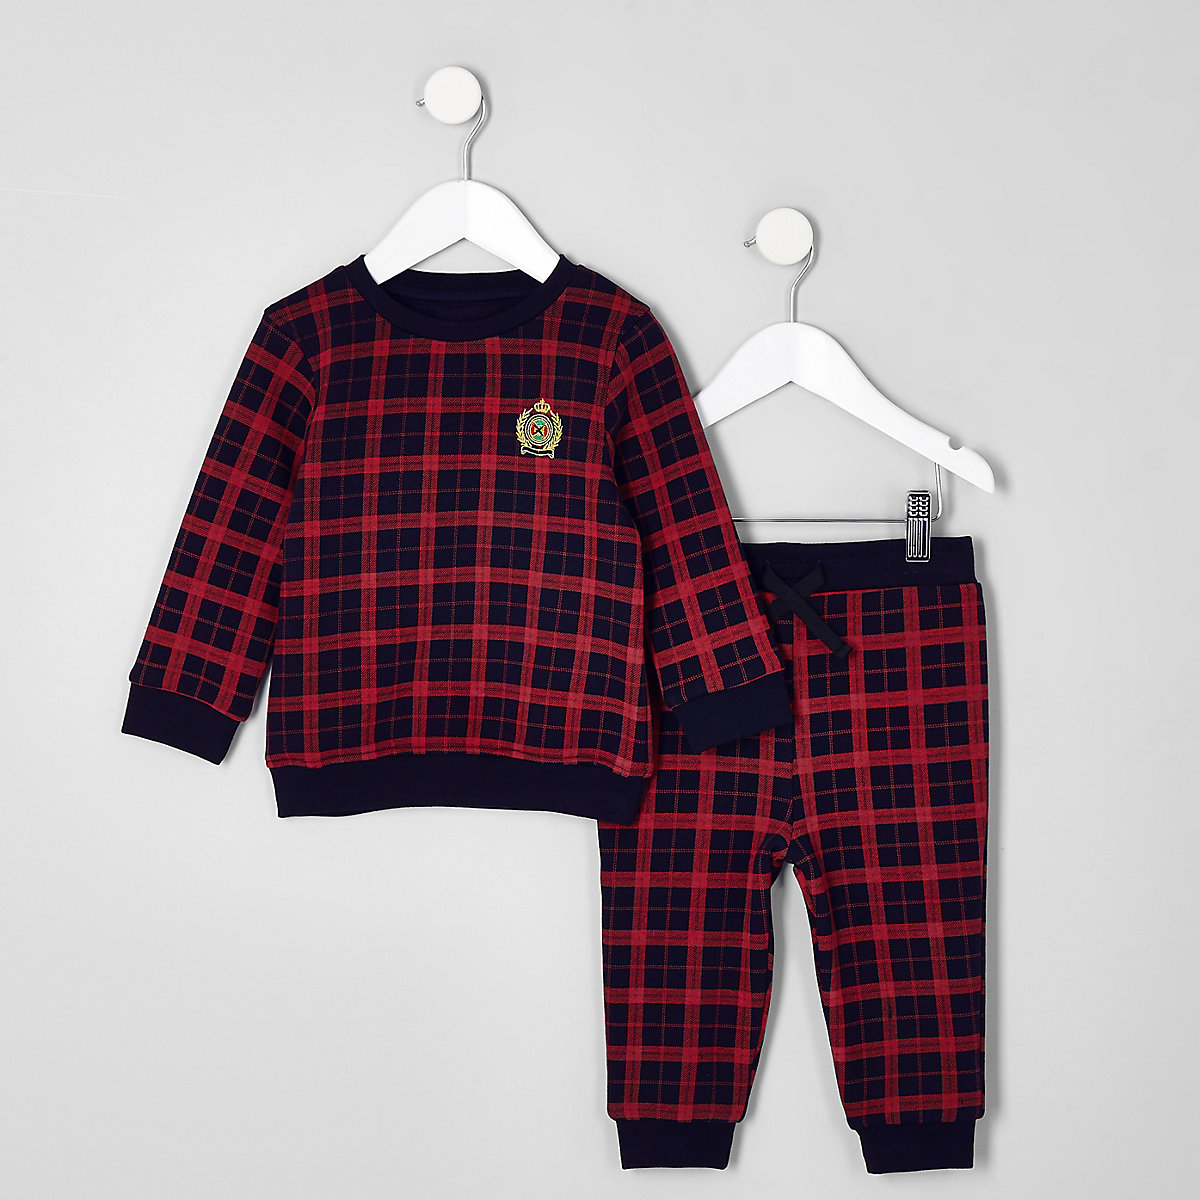 Mini boys red check sweatshirt outfit